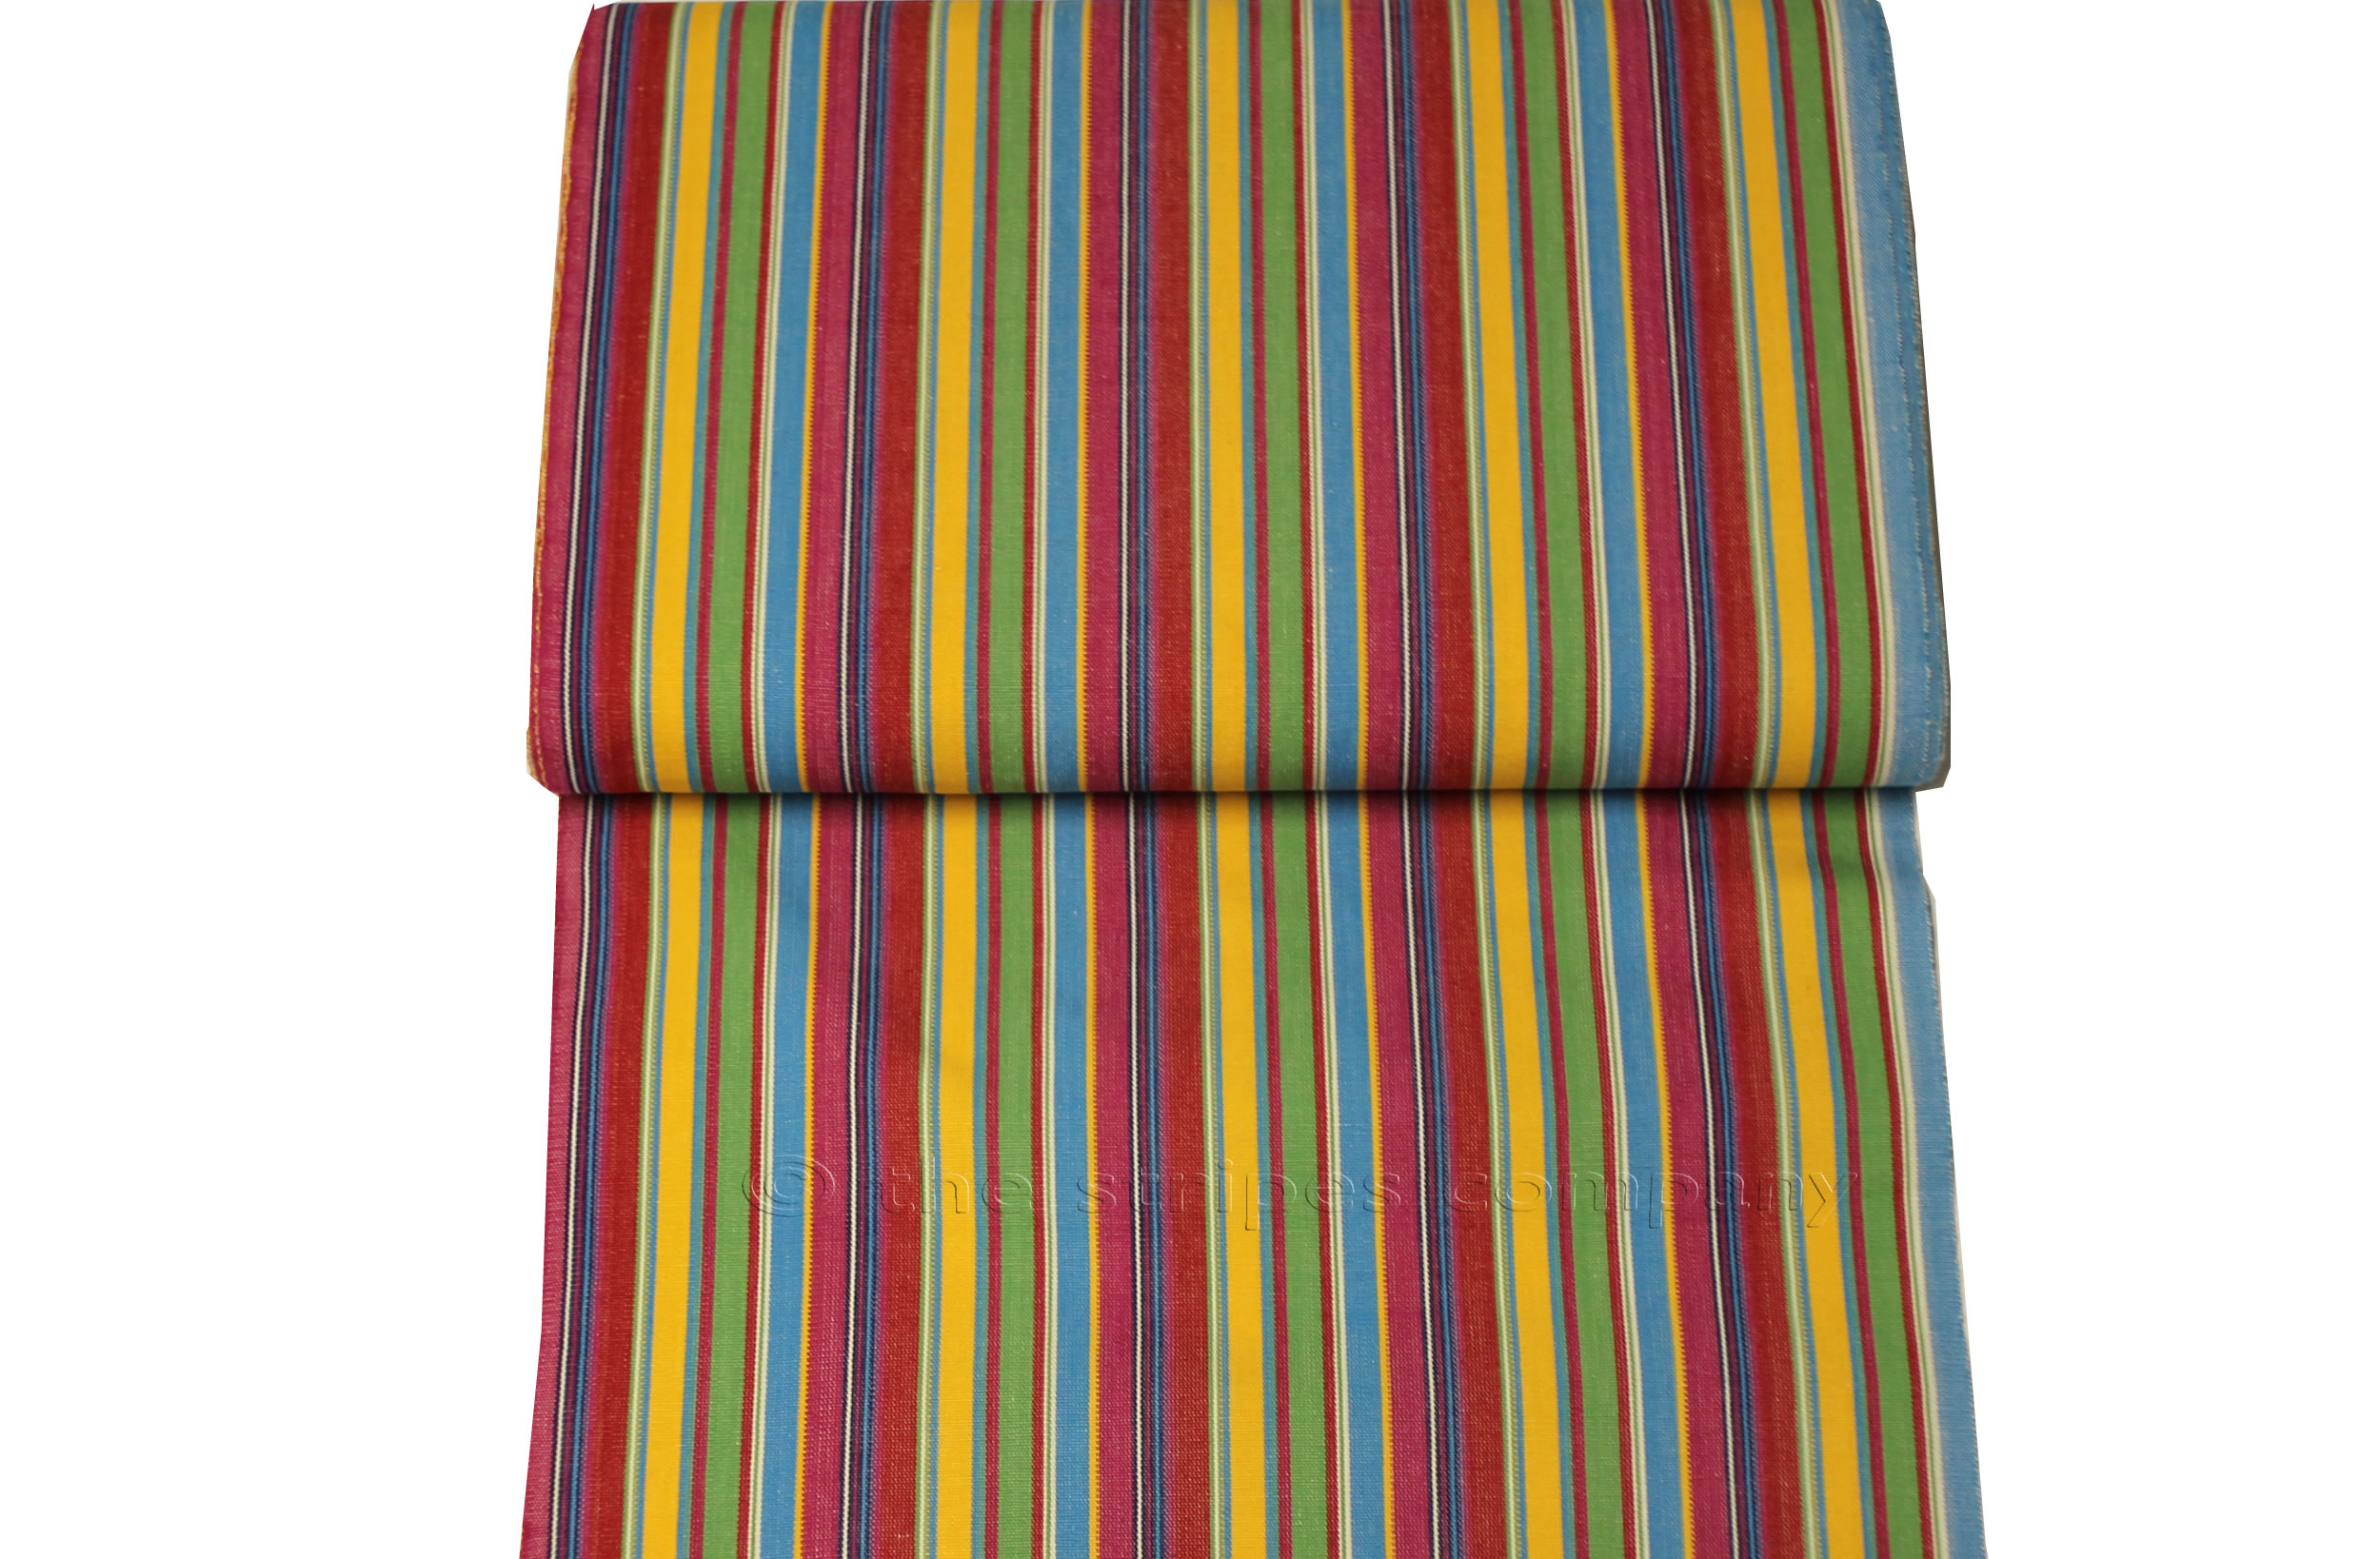 Pink Deckchair Canvas Deckchair Fabrics Striped Deck